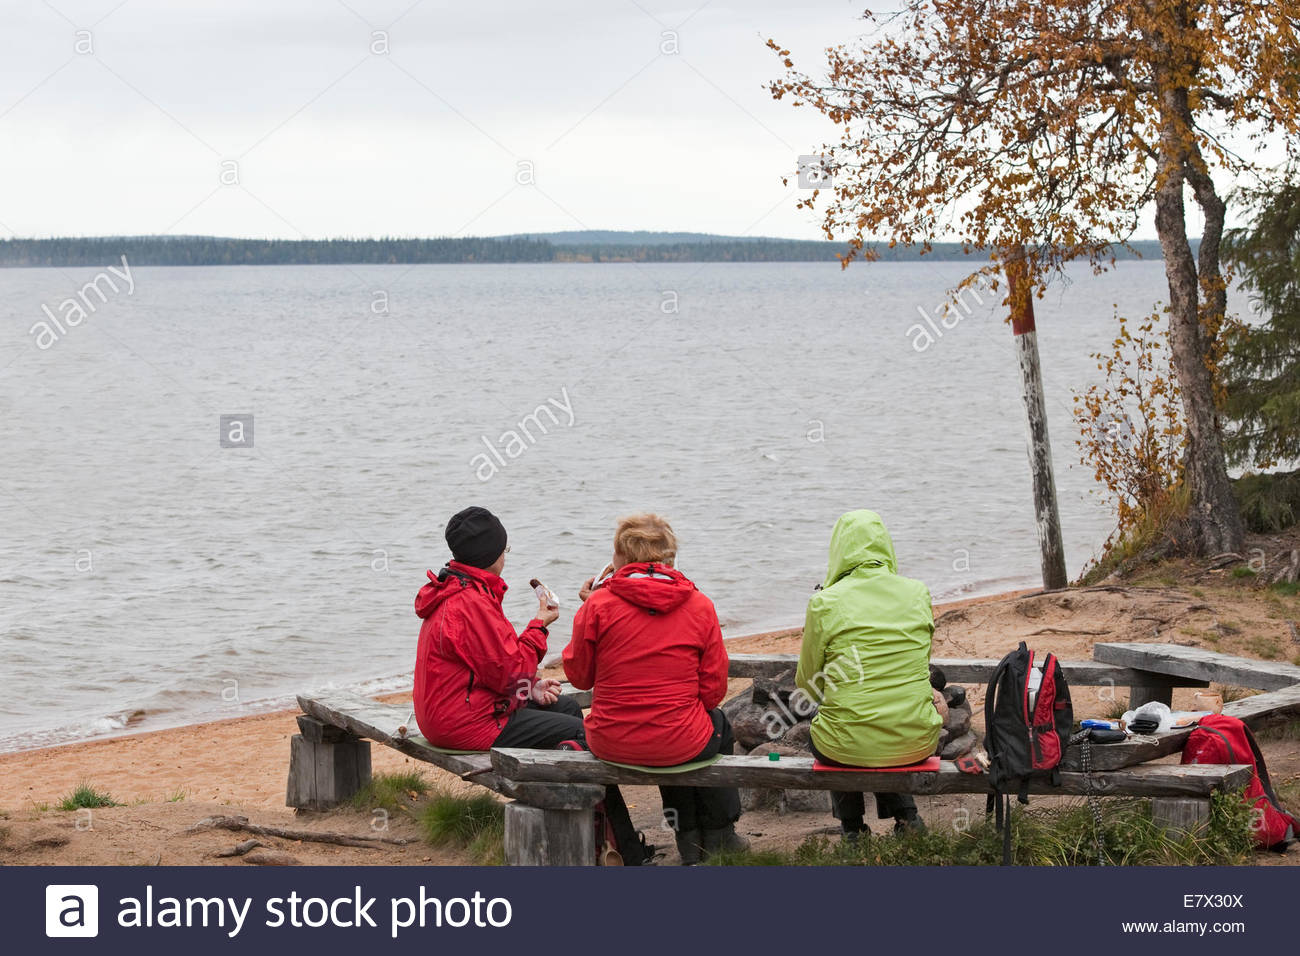 Women enjoying a cup of coffee by a lake in Finnish Lapland - Stock Image